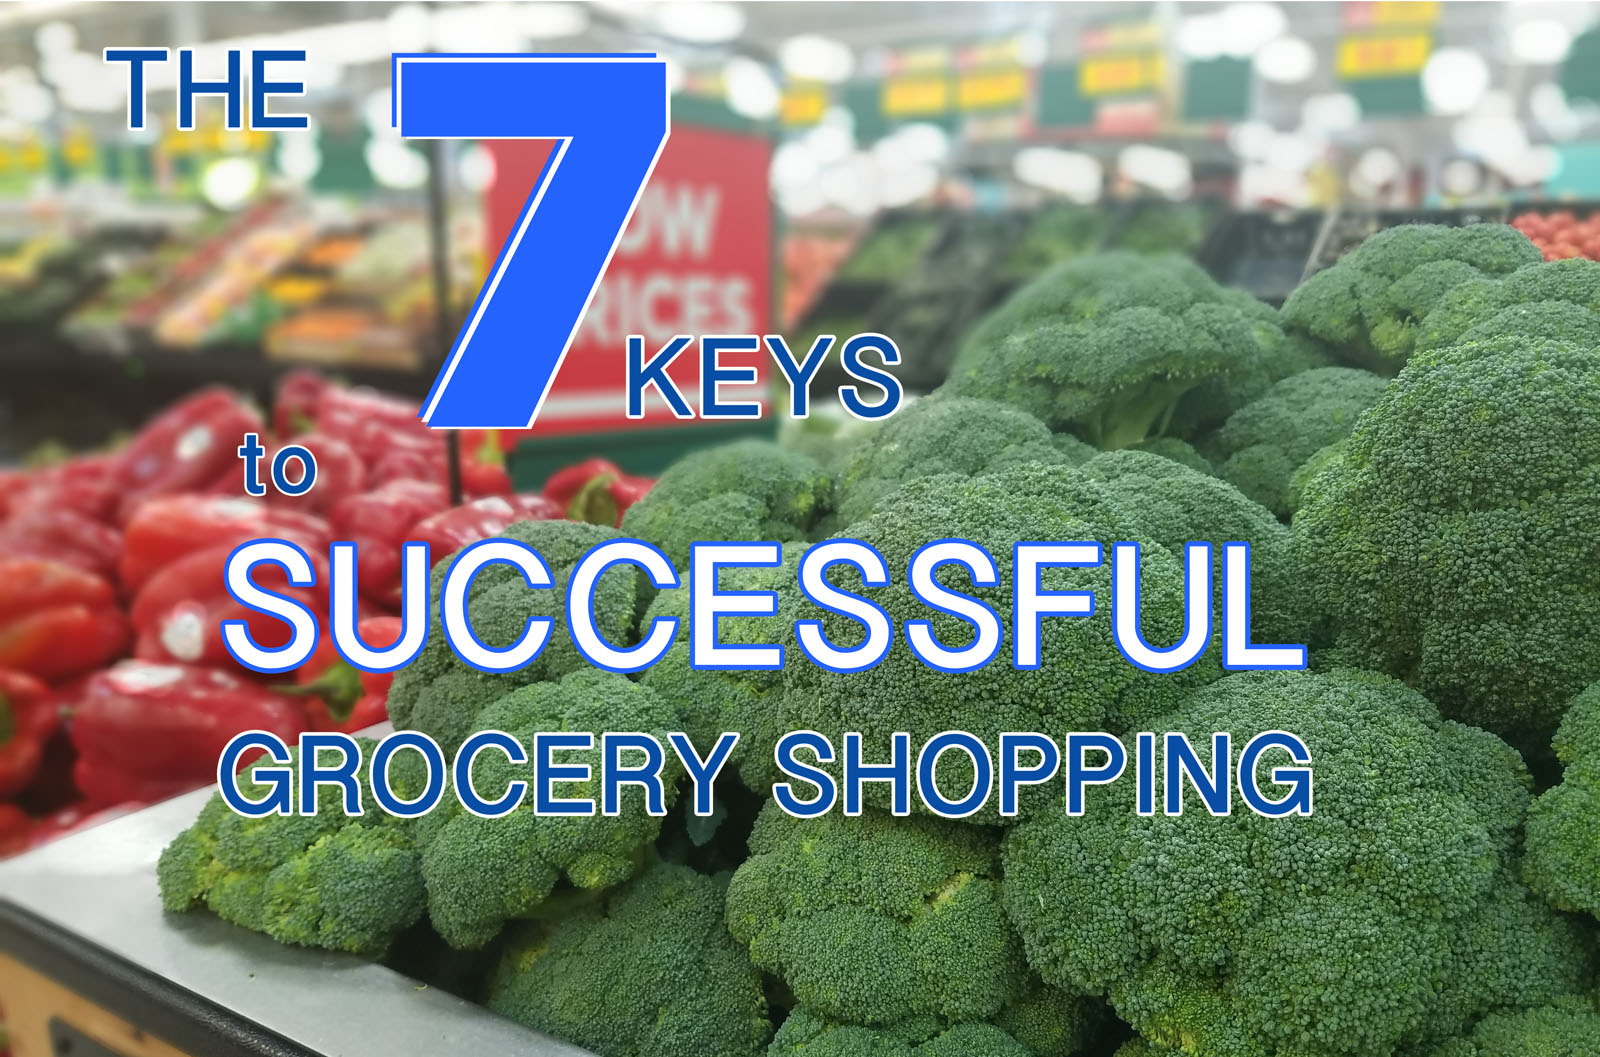 The 7 Keys to Successful Grocery Shopping for Health and Fitness